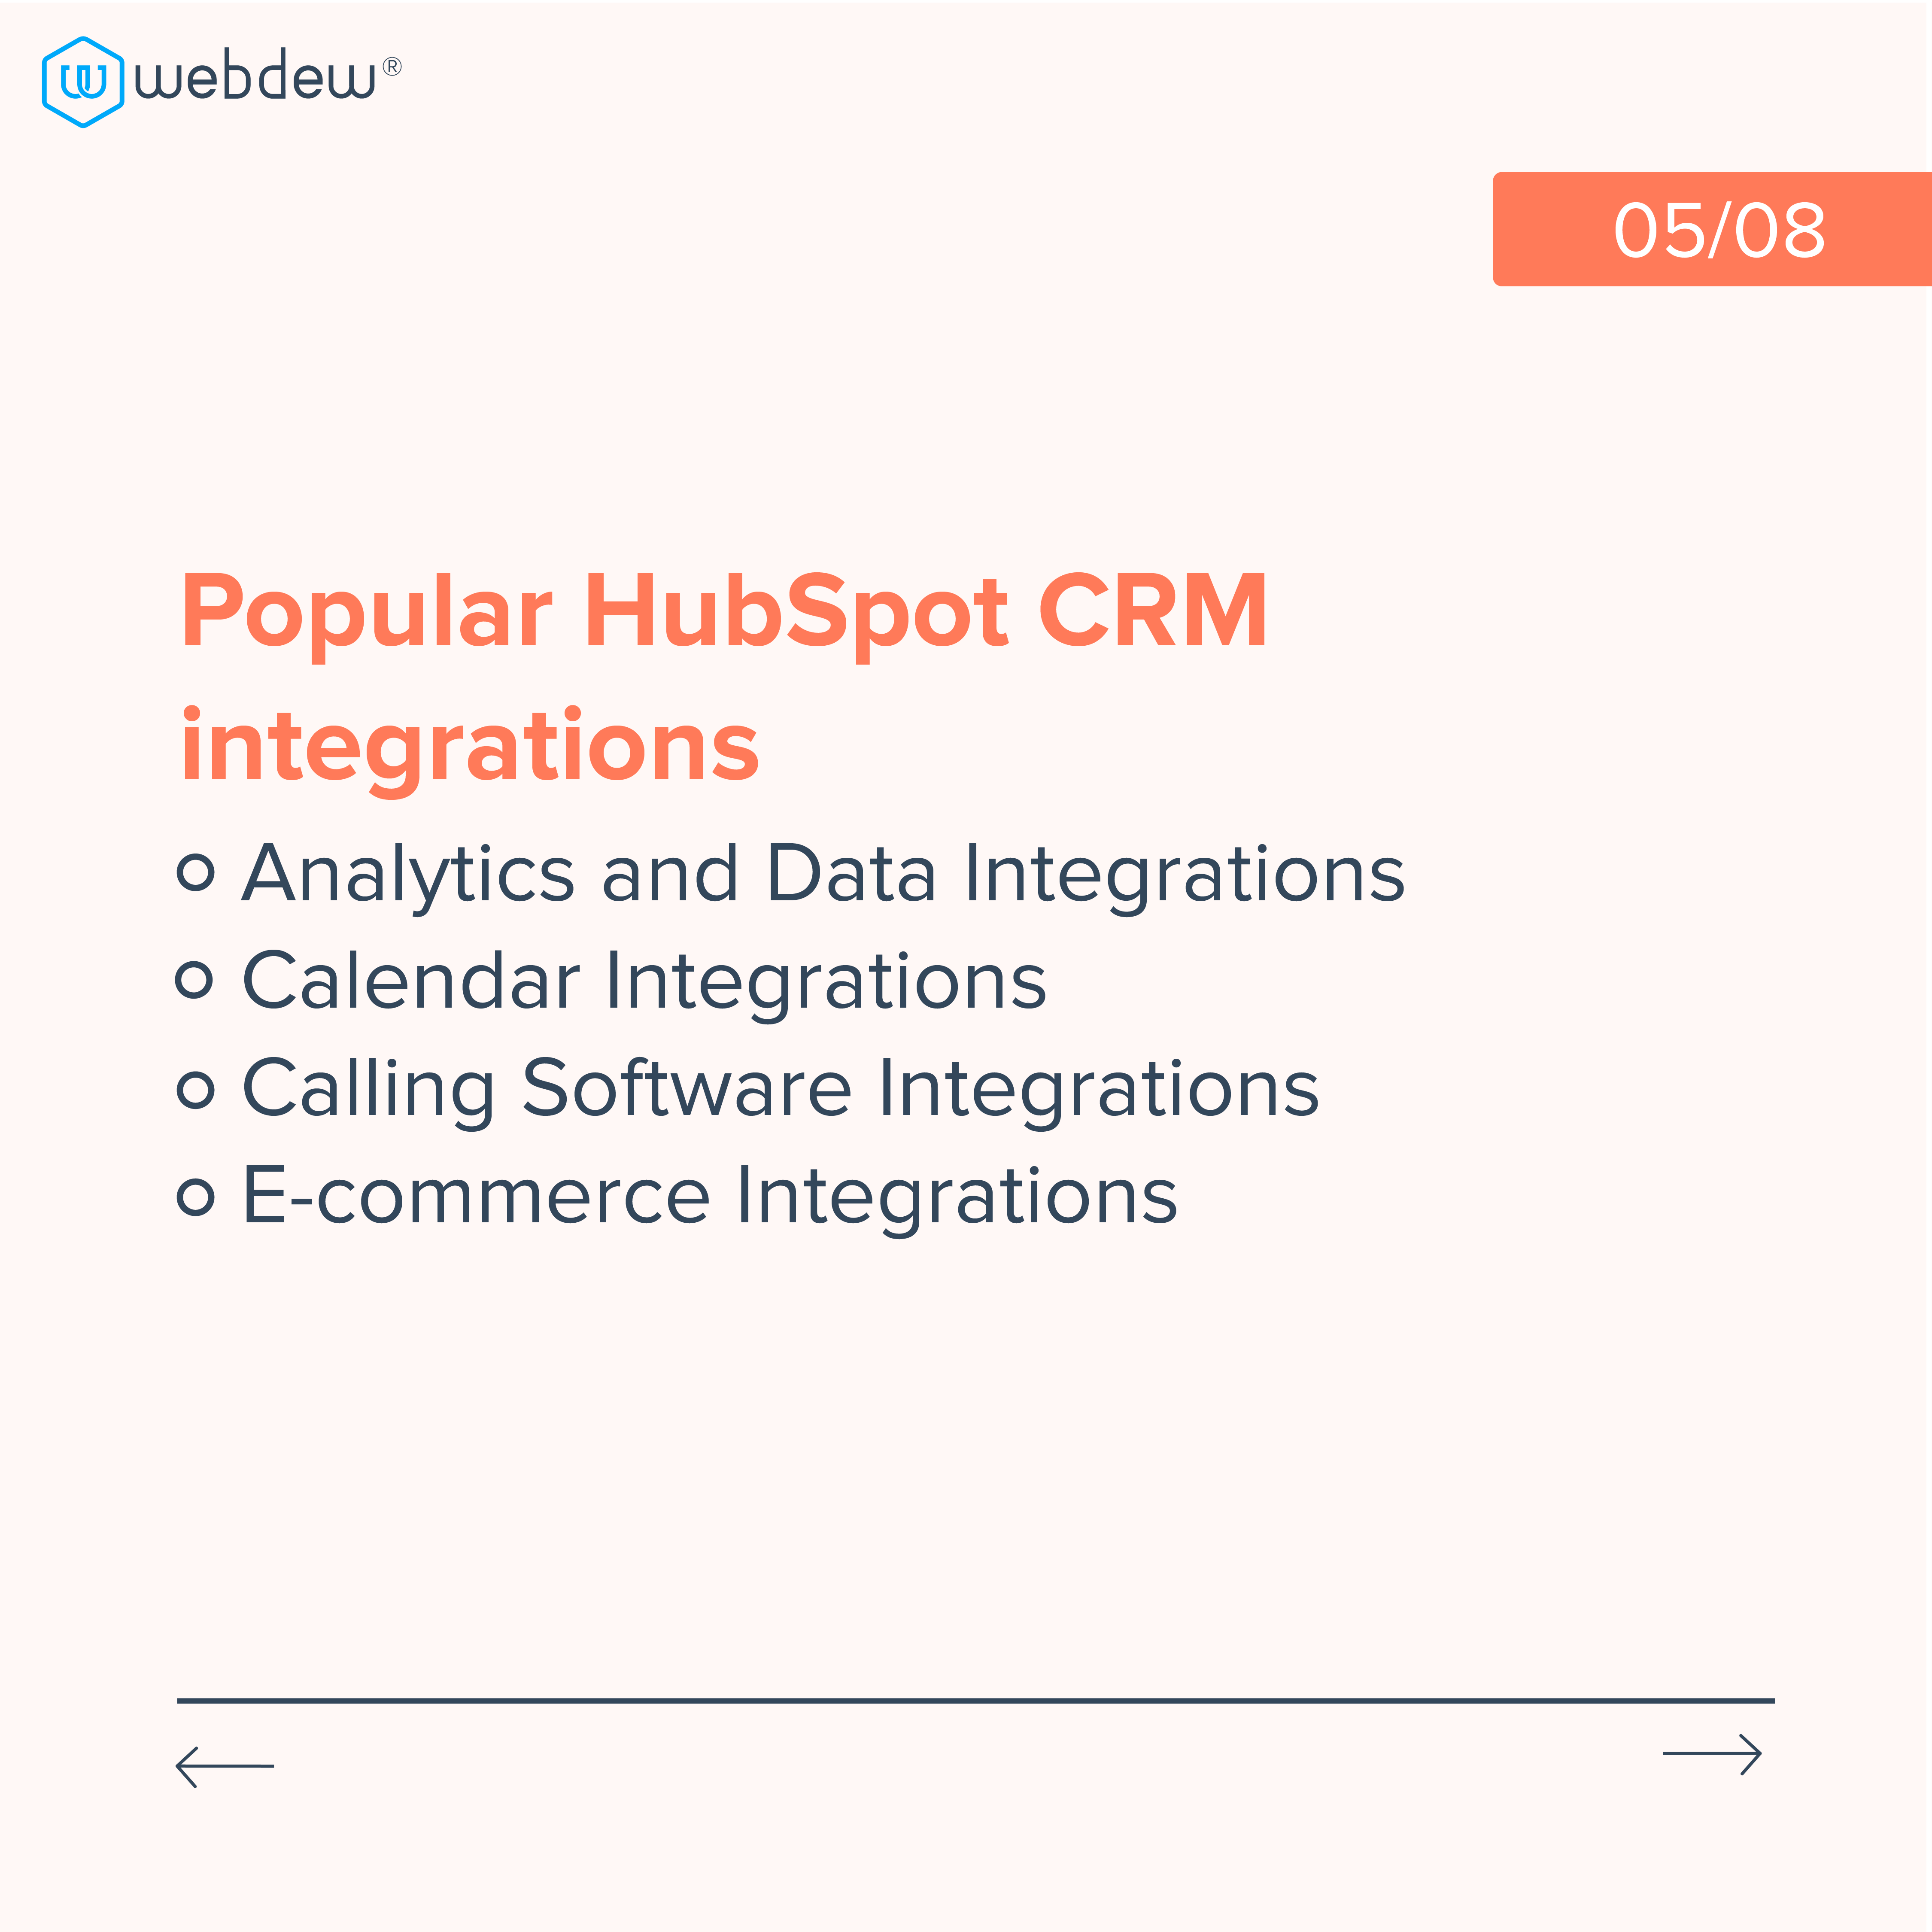 5-all you need to know about hubspot CRM integration in one guide-05